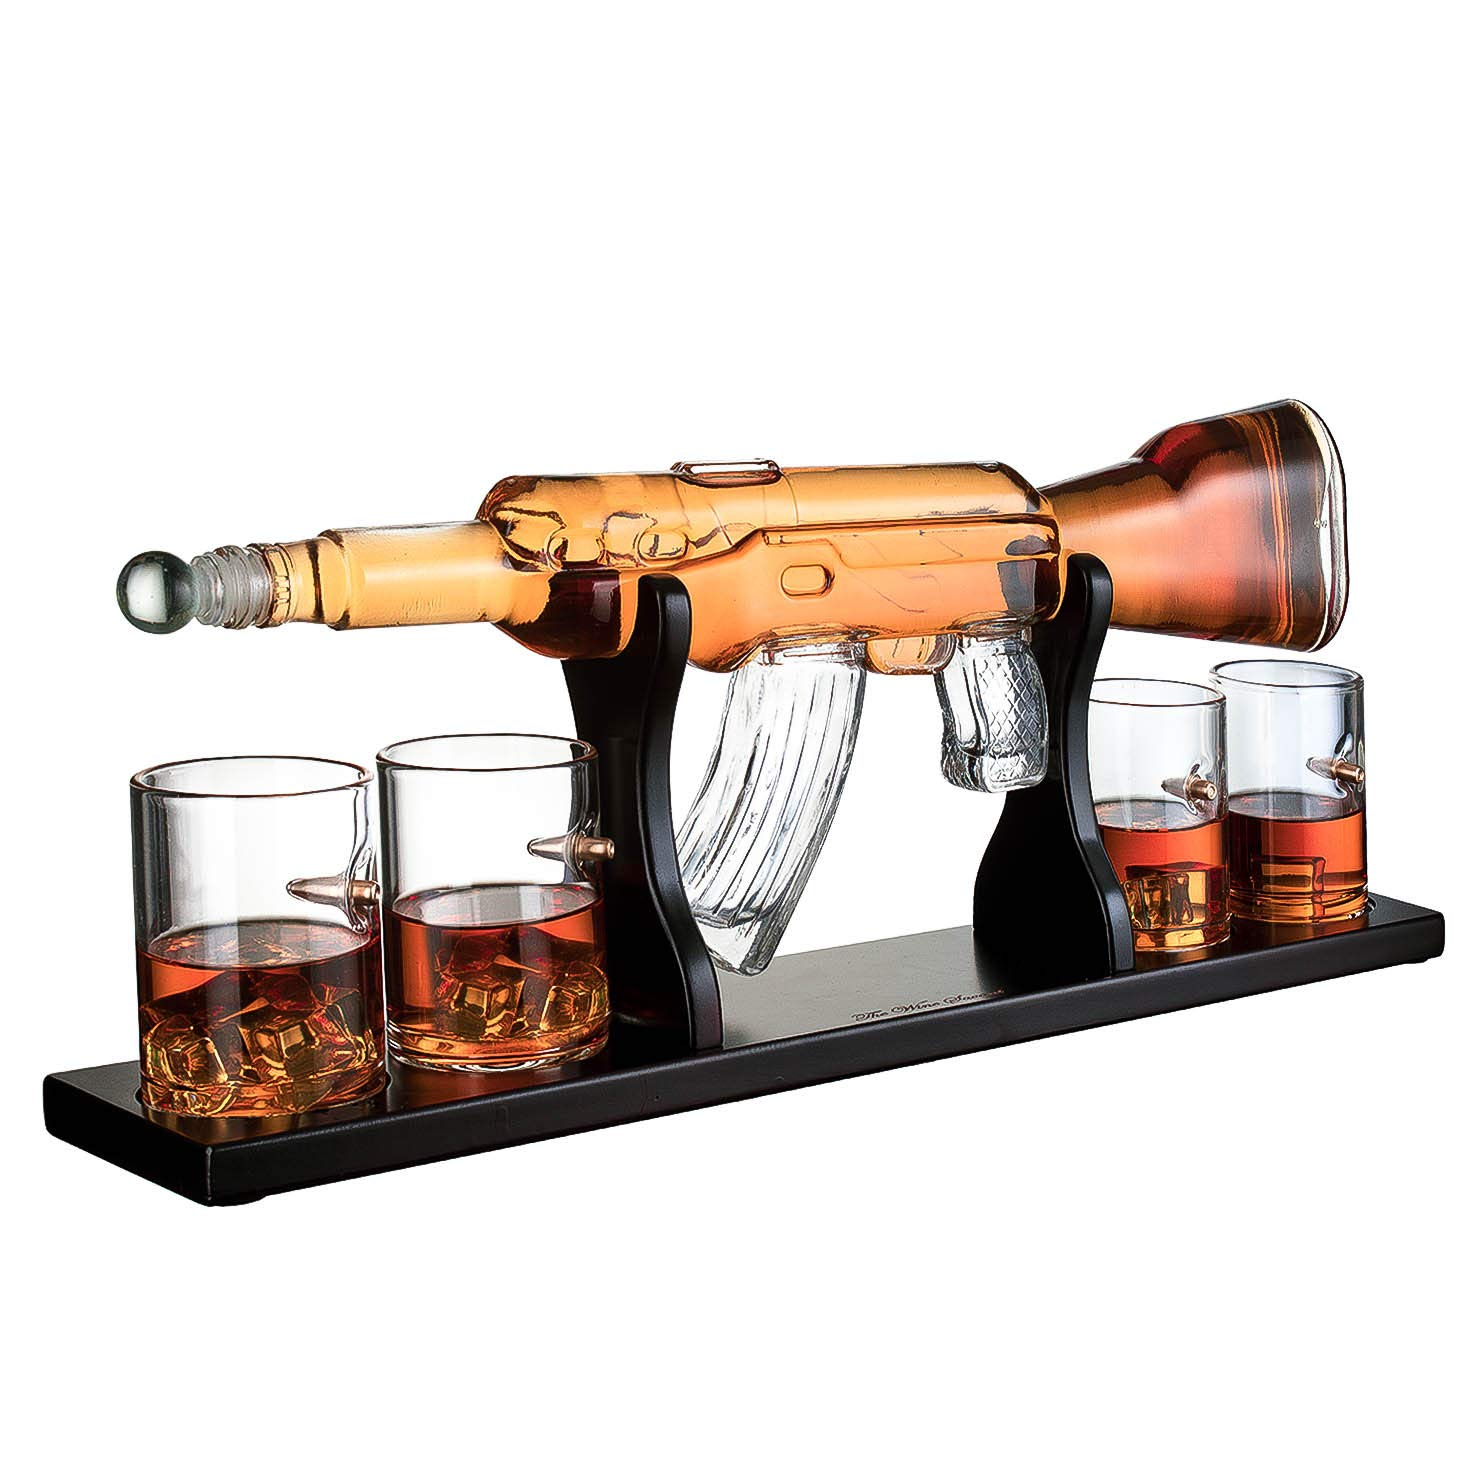 Gun Large Decanter Set Bullet Glasses - Limited Edition Elegant Rifle Gun Whiskey Decanter 22.5'' 1000ml With 4 Bullet Whiskey Glasses and Mohogany Wooden Base By The Wine Savant by The Wine Savant